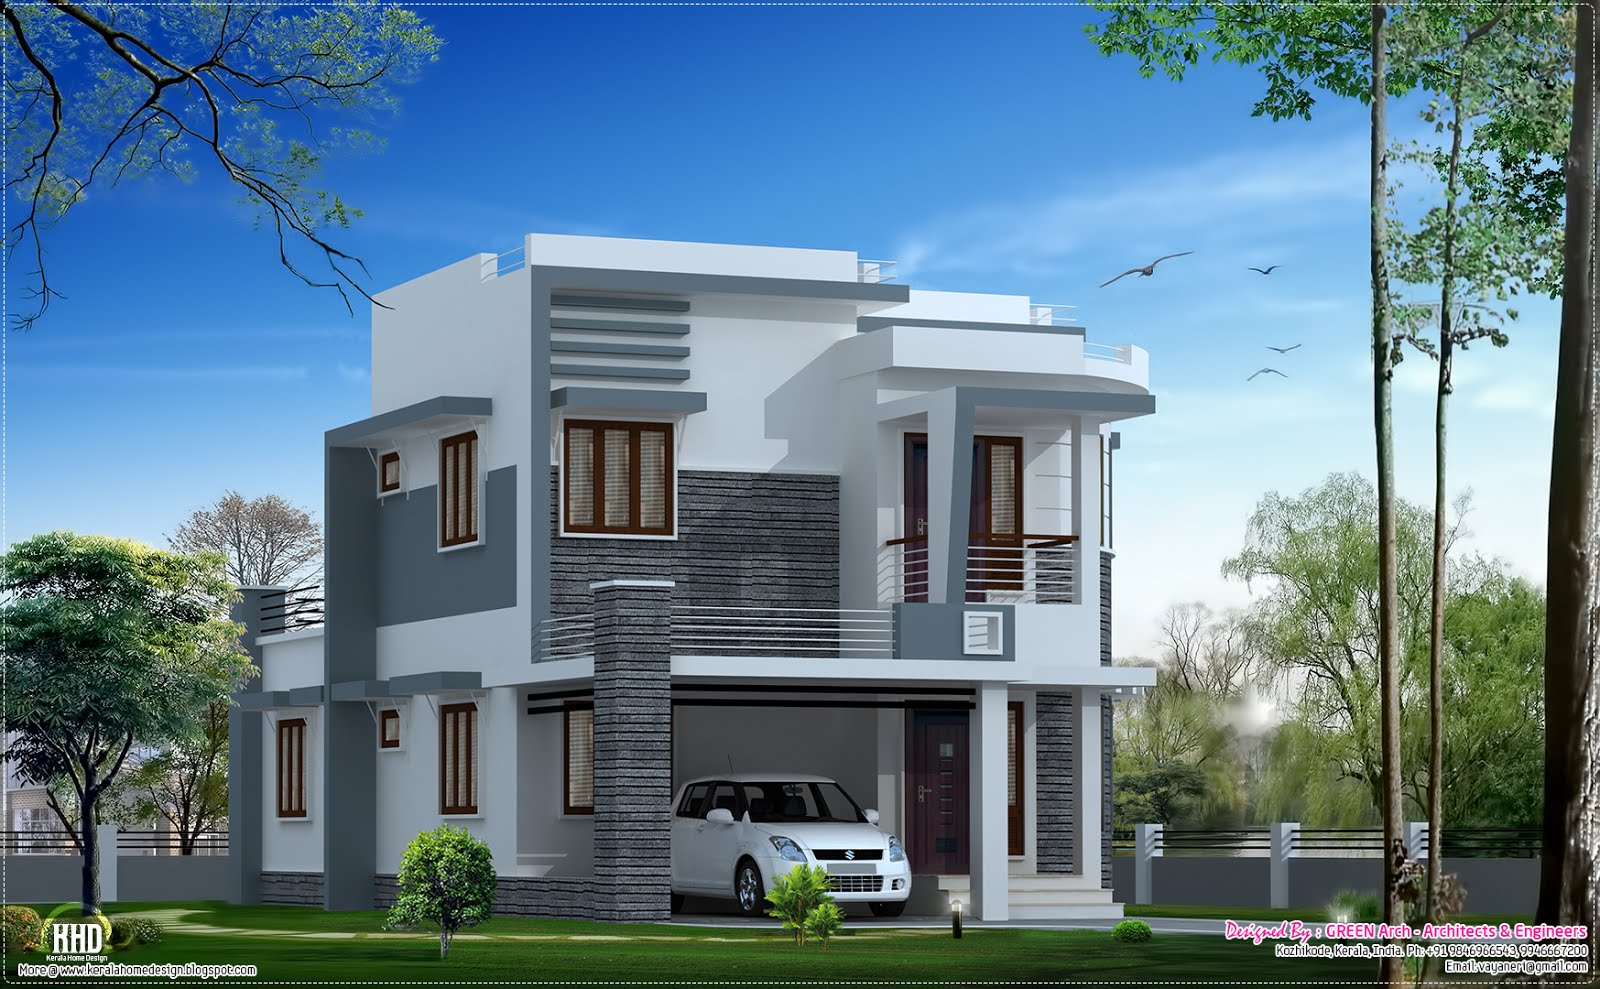 Modern Home Design: Kerala Home Design And Floor Plans